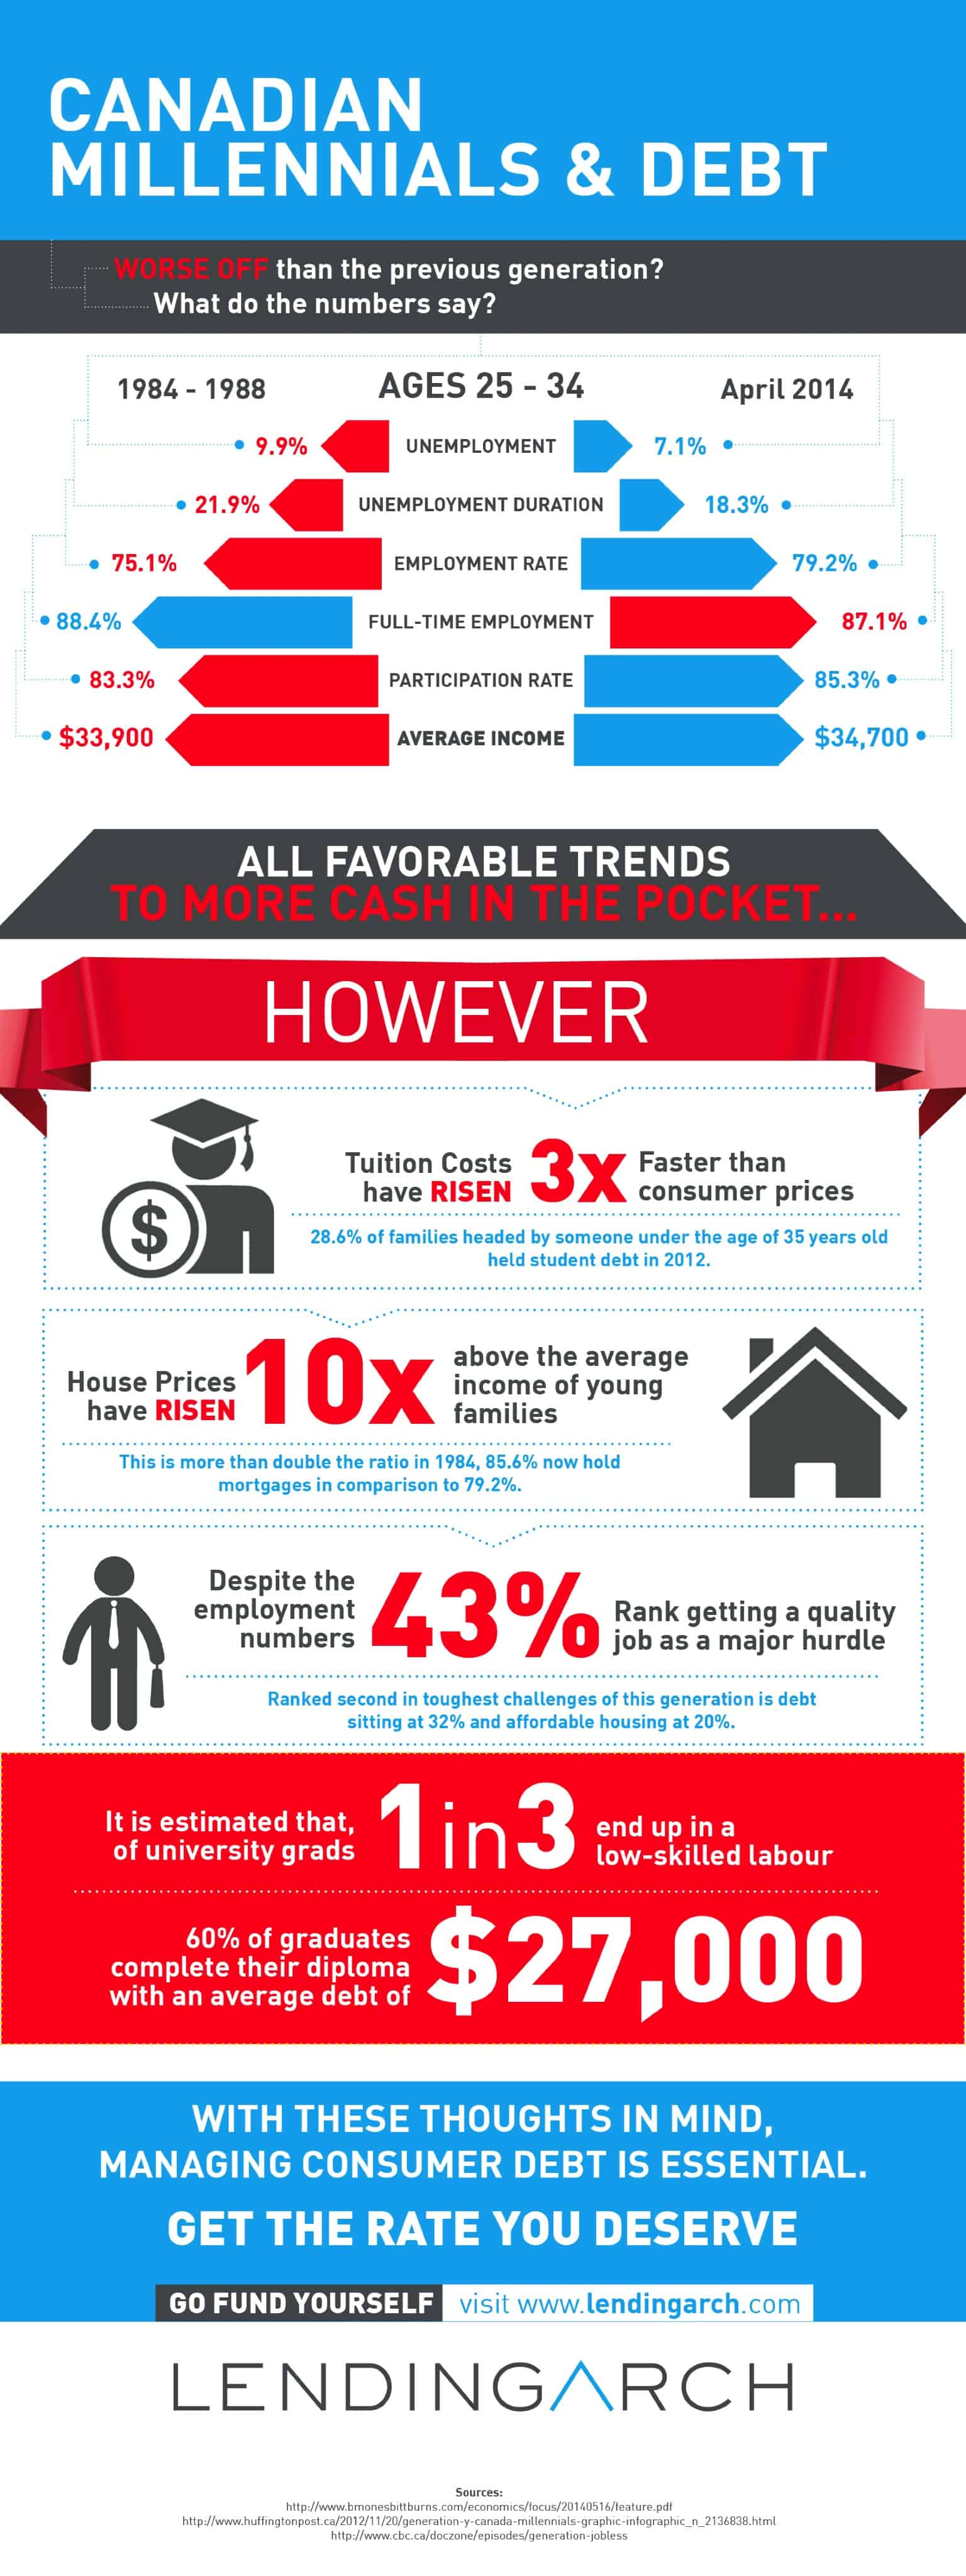 Canadian millennials and debt infographic